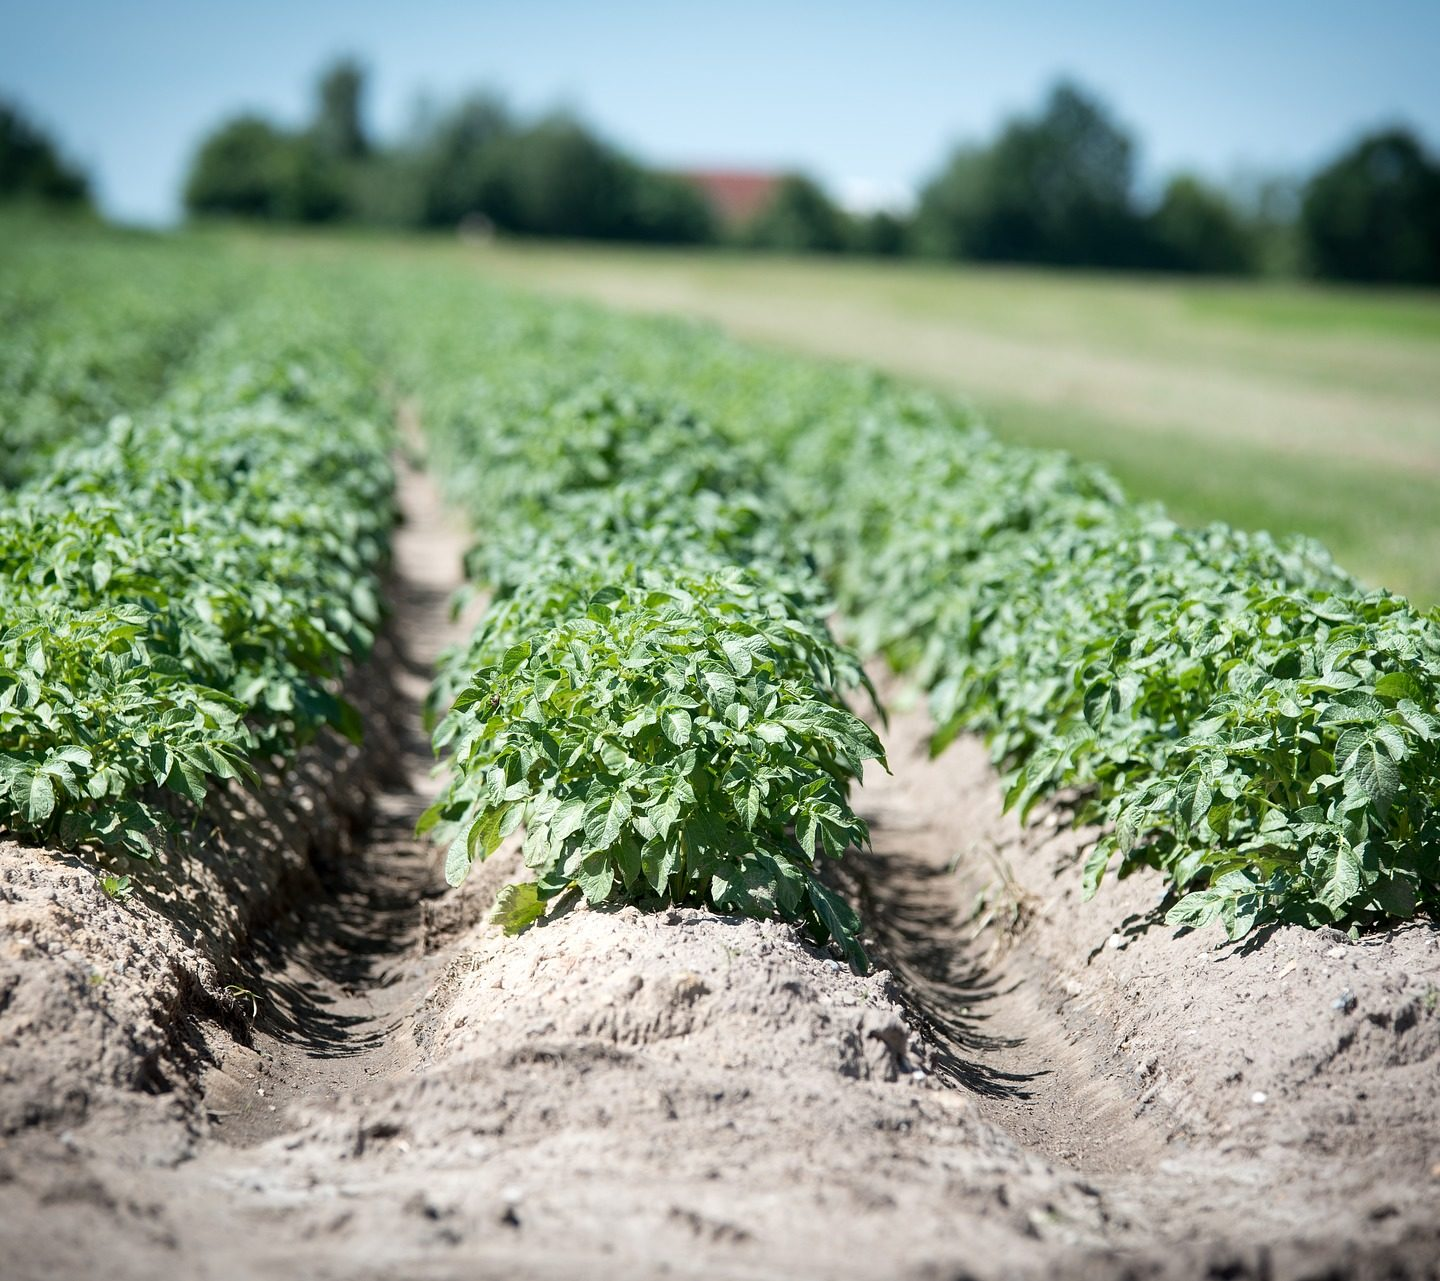 GMO potatoes help to reduce pesticide application by up to 90%